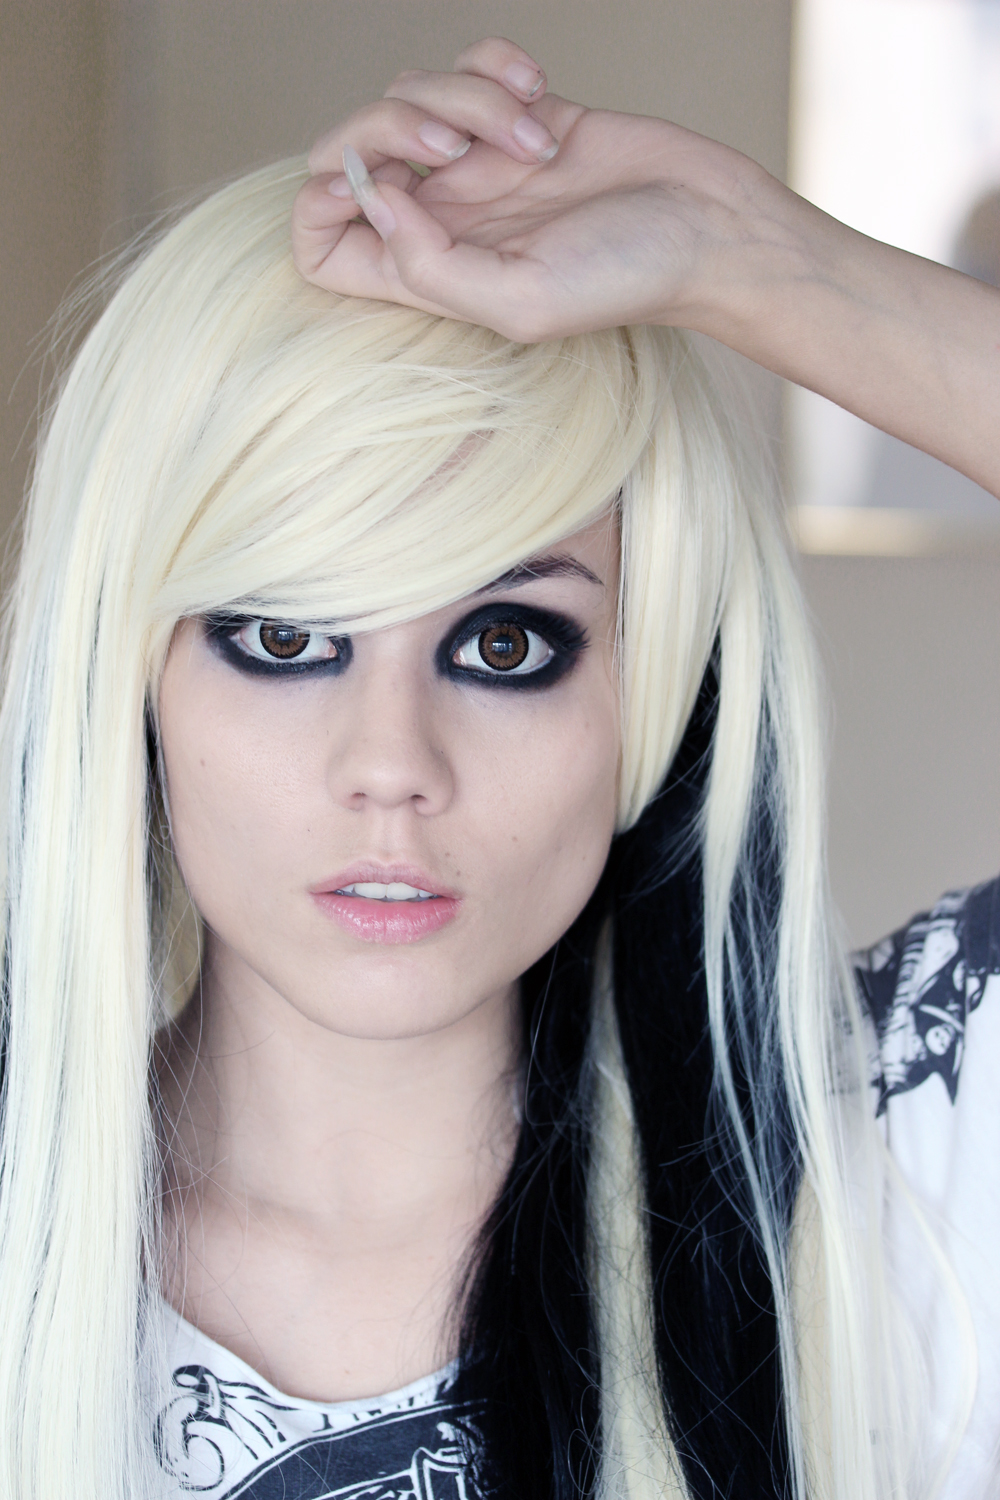 girls with blonde Emo hair scene